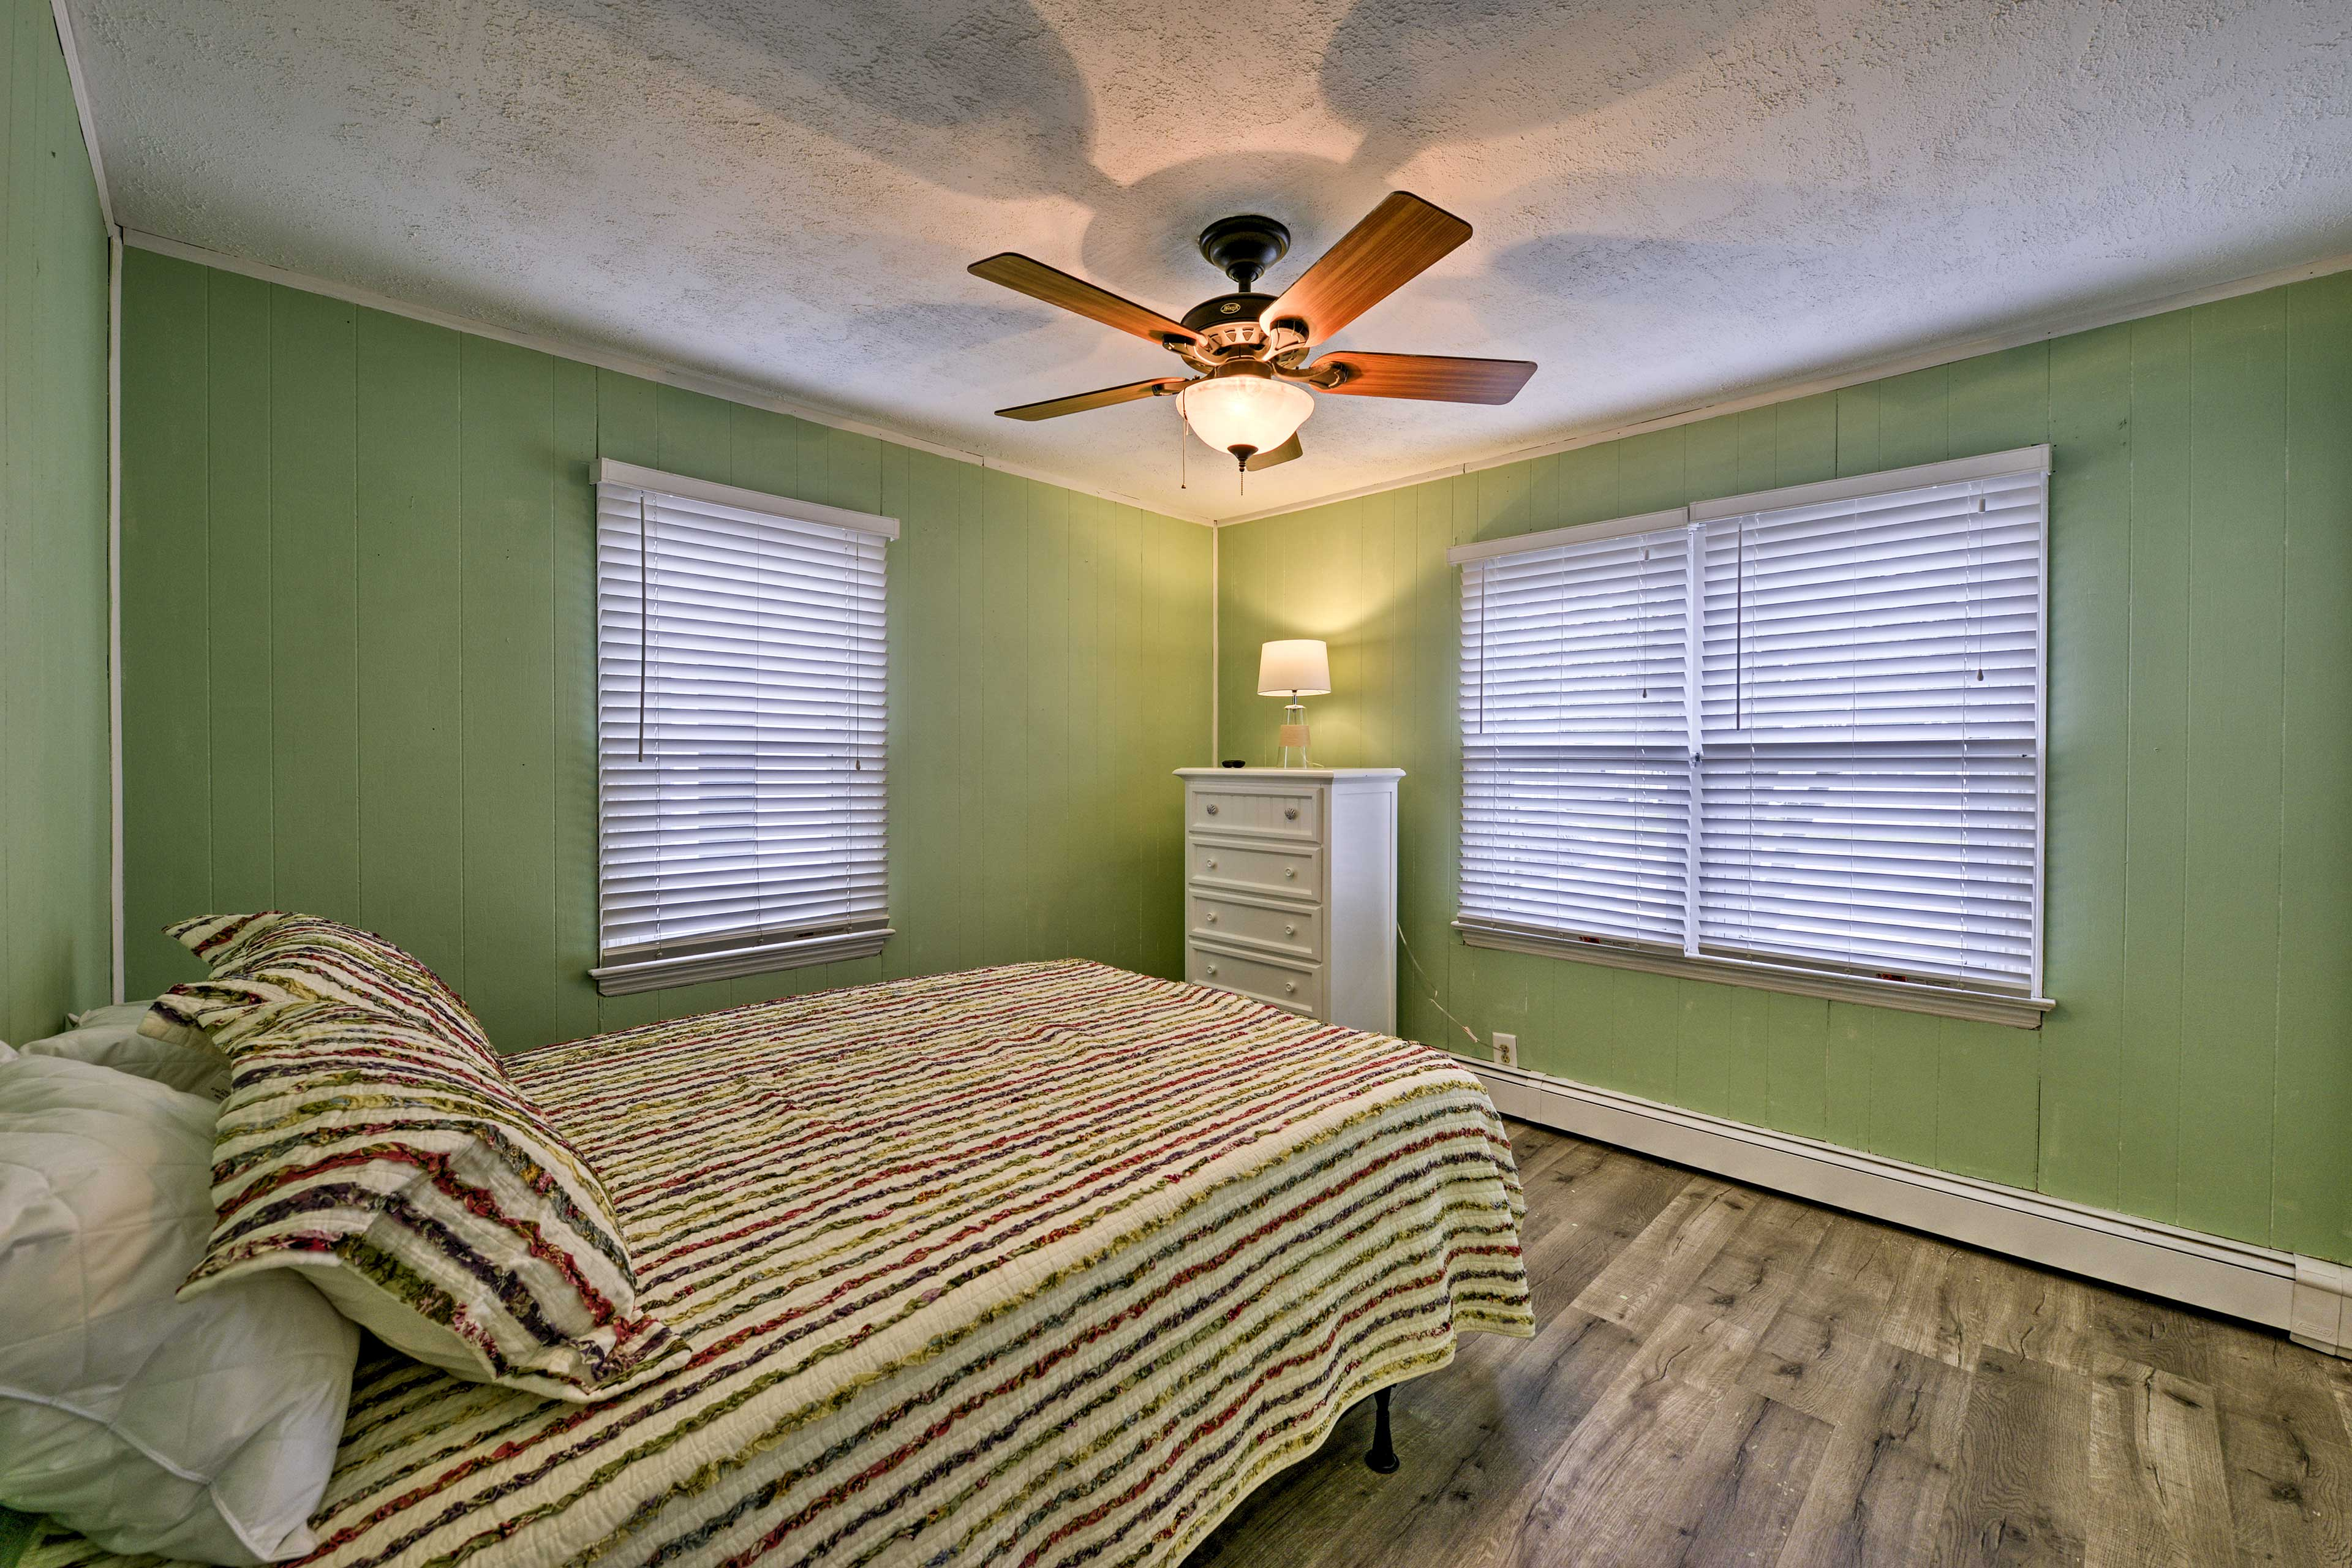 Overhead ceiling fans will keep you cool and comfortable.